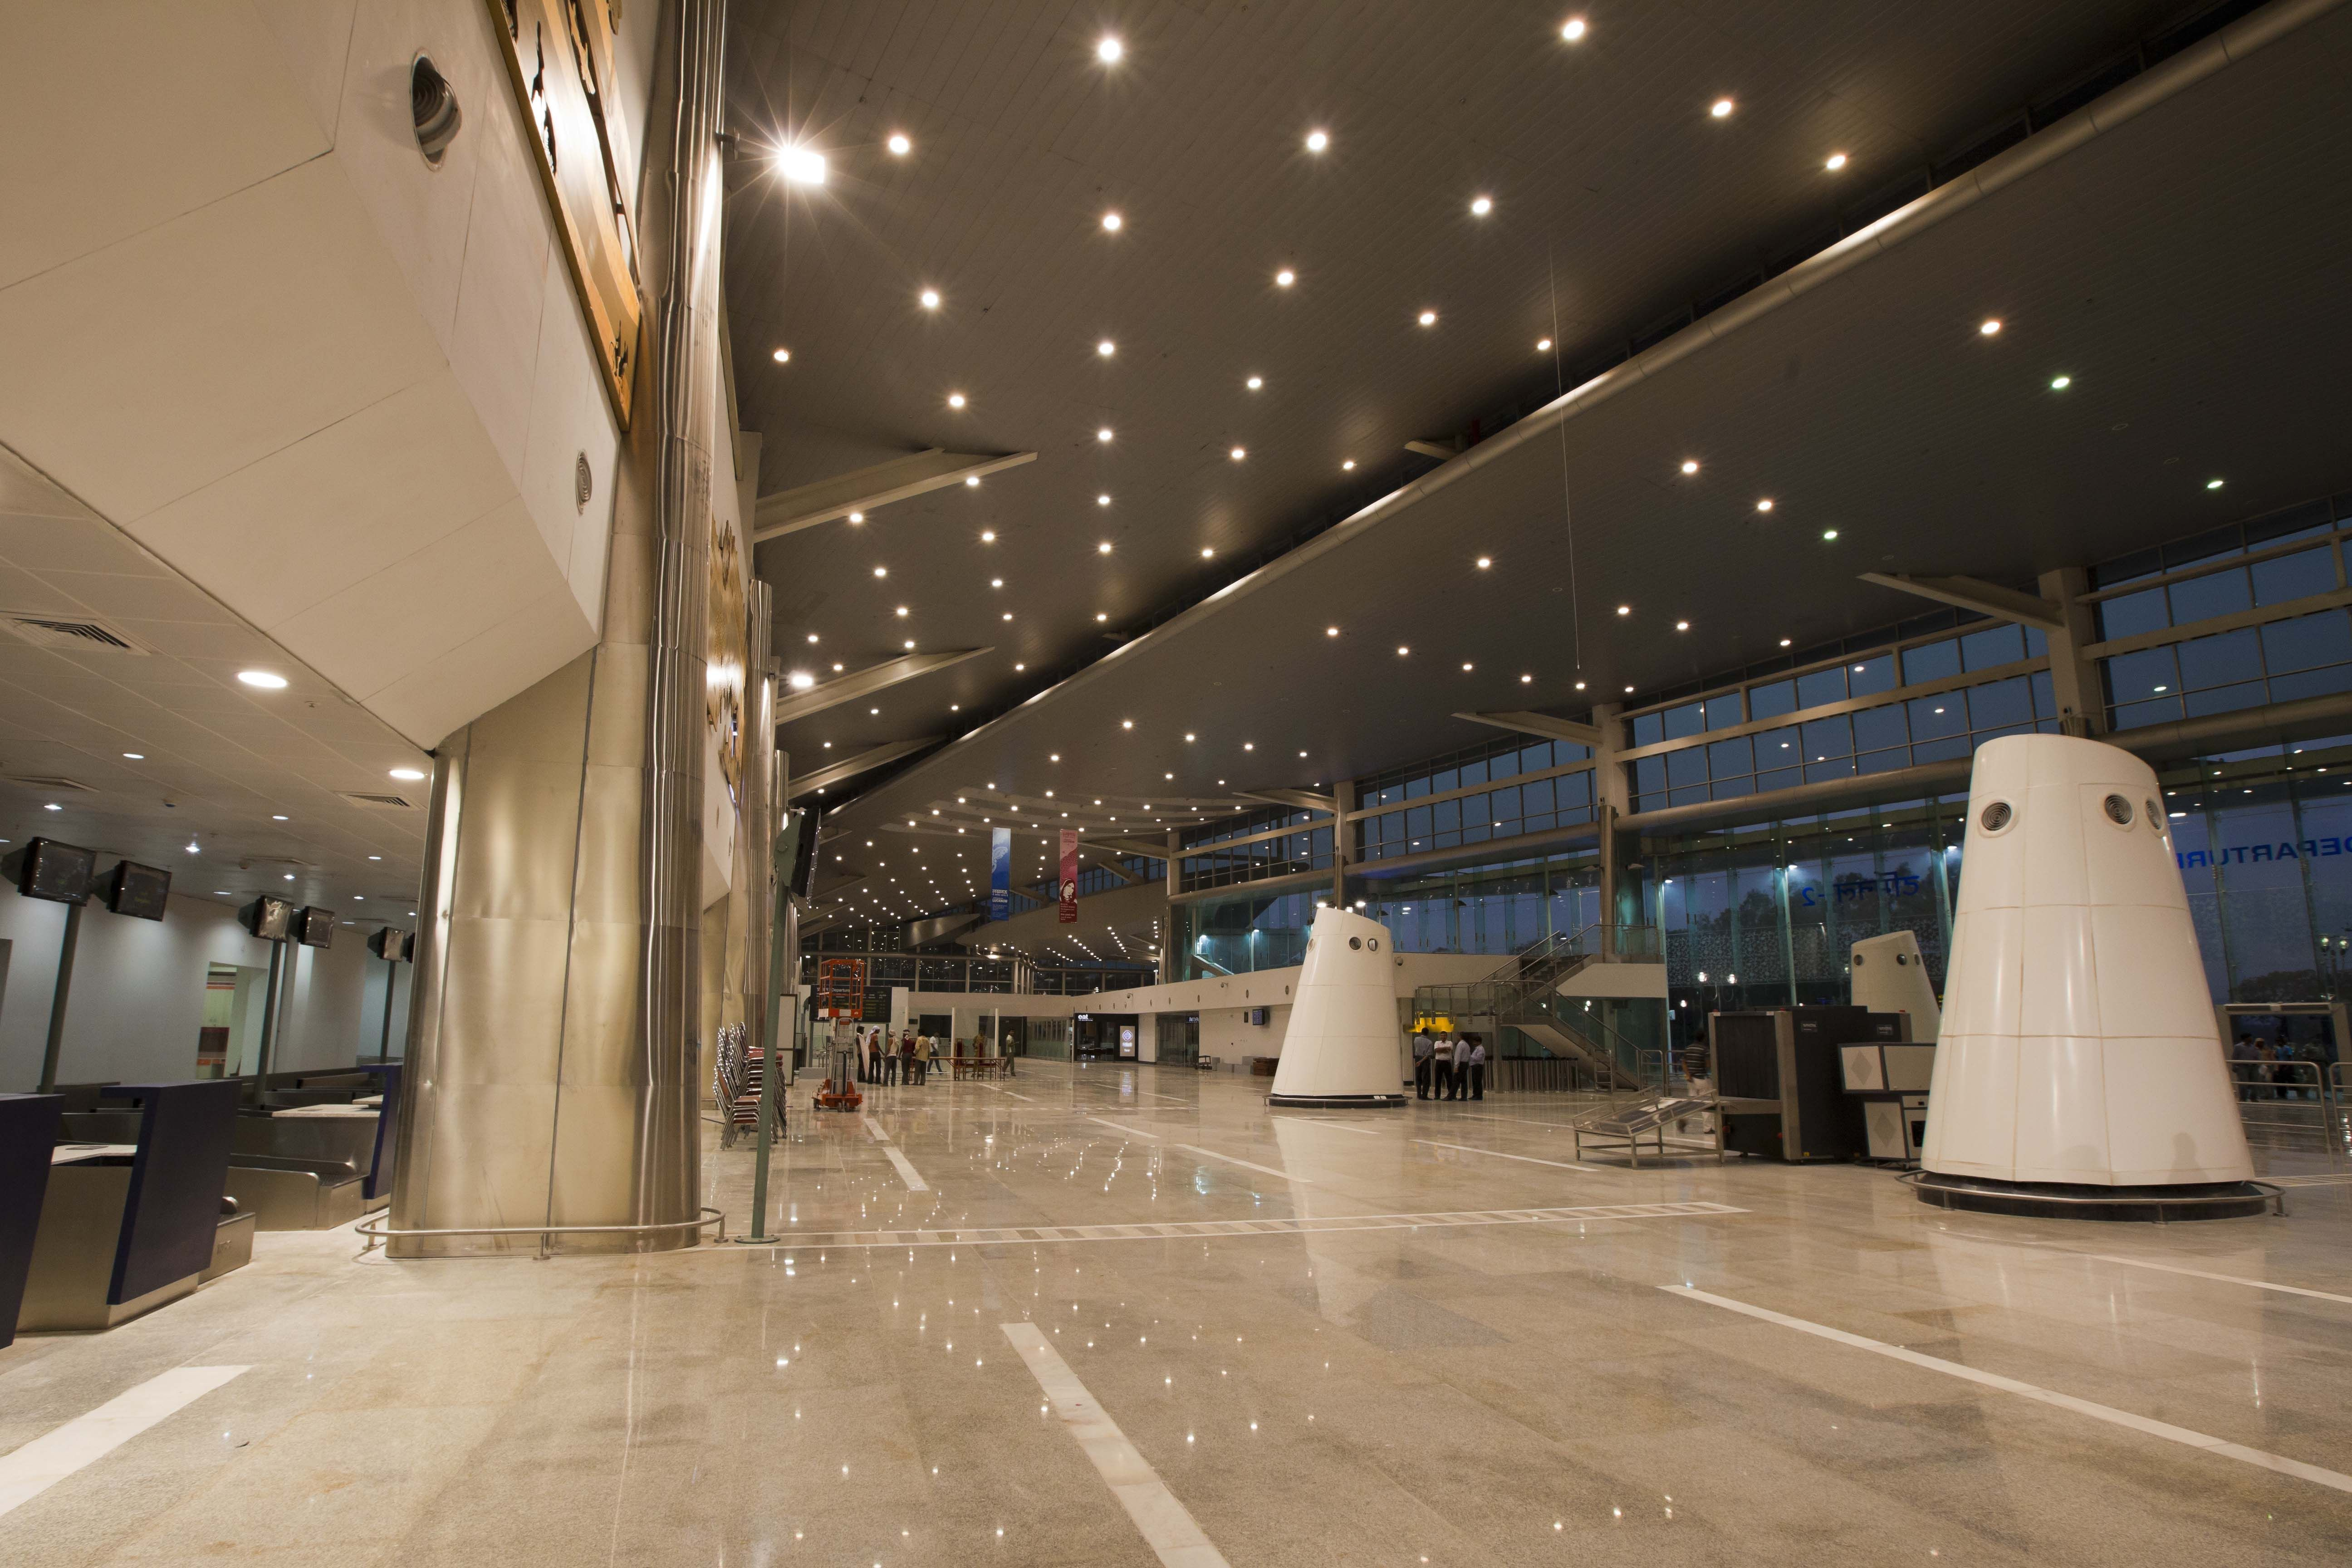 Architecture and interior design projects in India - New Terminal .